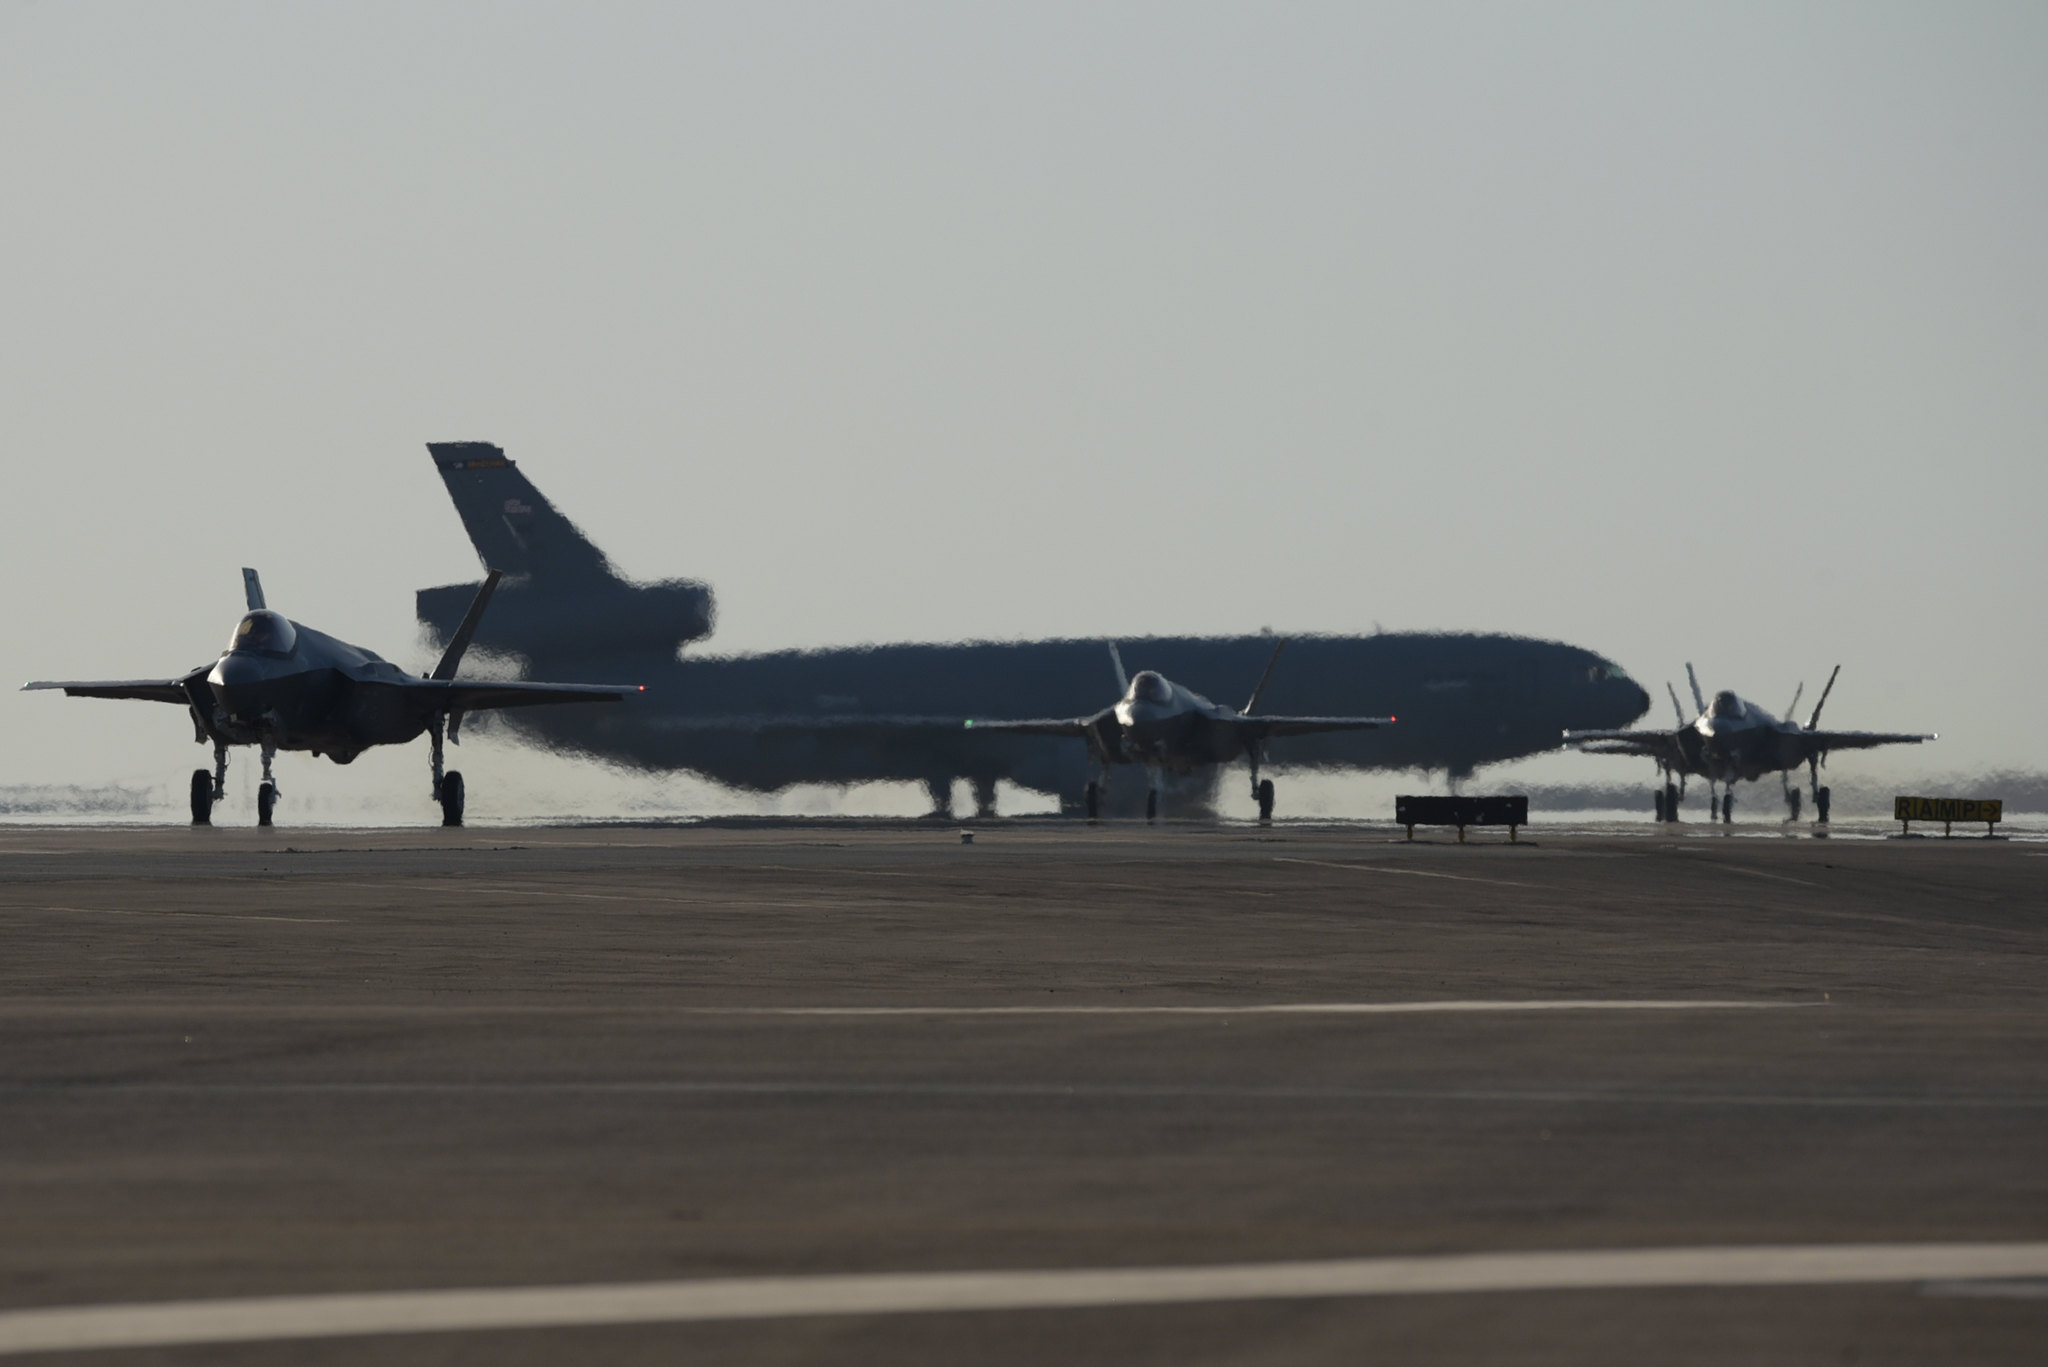 Four F-35A Lightning IIs assigned to the 4th Expeditionary Fighter Squadron taxi after landing at Al Dhafra Air Base, United Arab Emirates, April 15, 2019. The F-35A Lightning II is deployed to the U.S. Air Forces Central Command area of responsibility for the first time in U.S. Air Force history. (Staff Sgt. Chris Thornbury/Air Fprce)